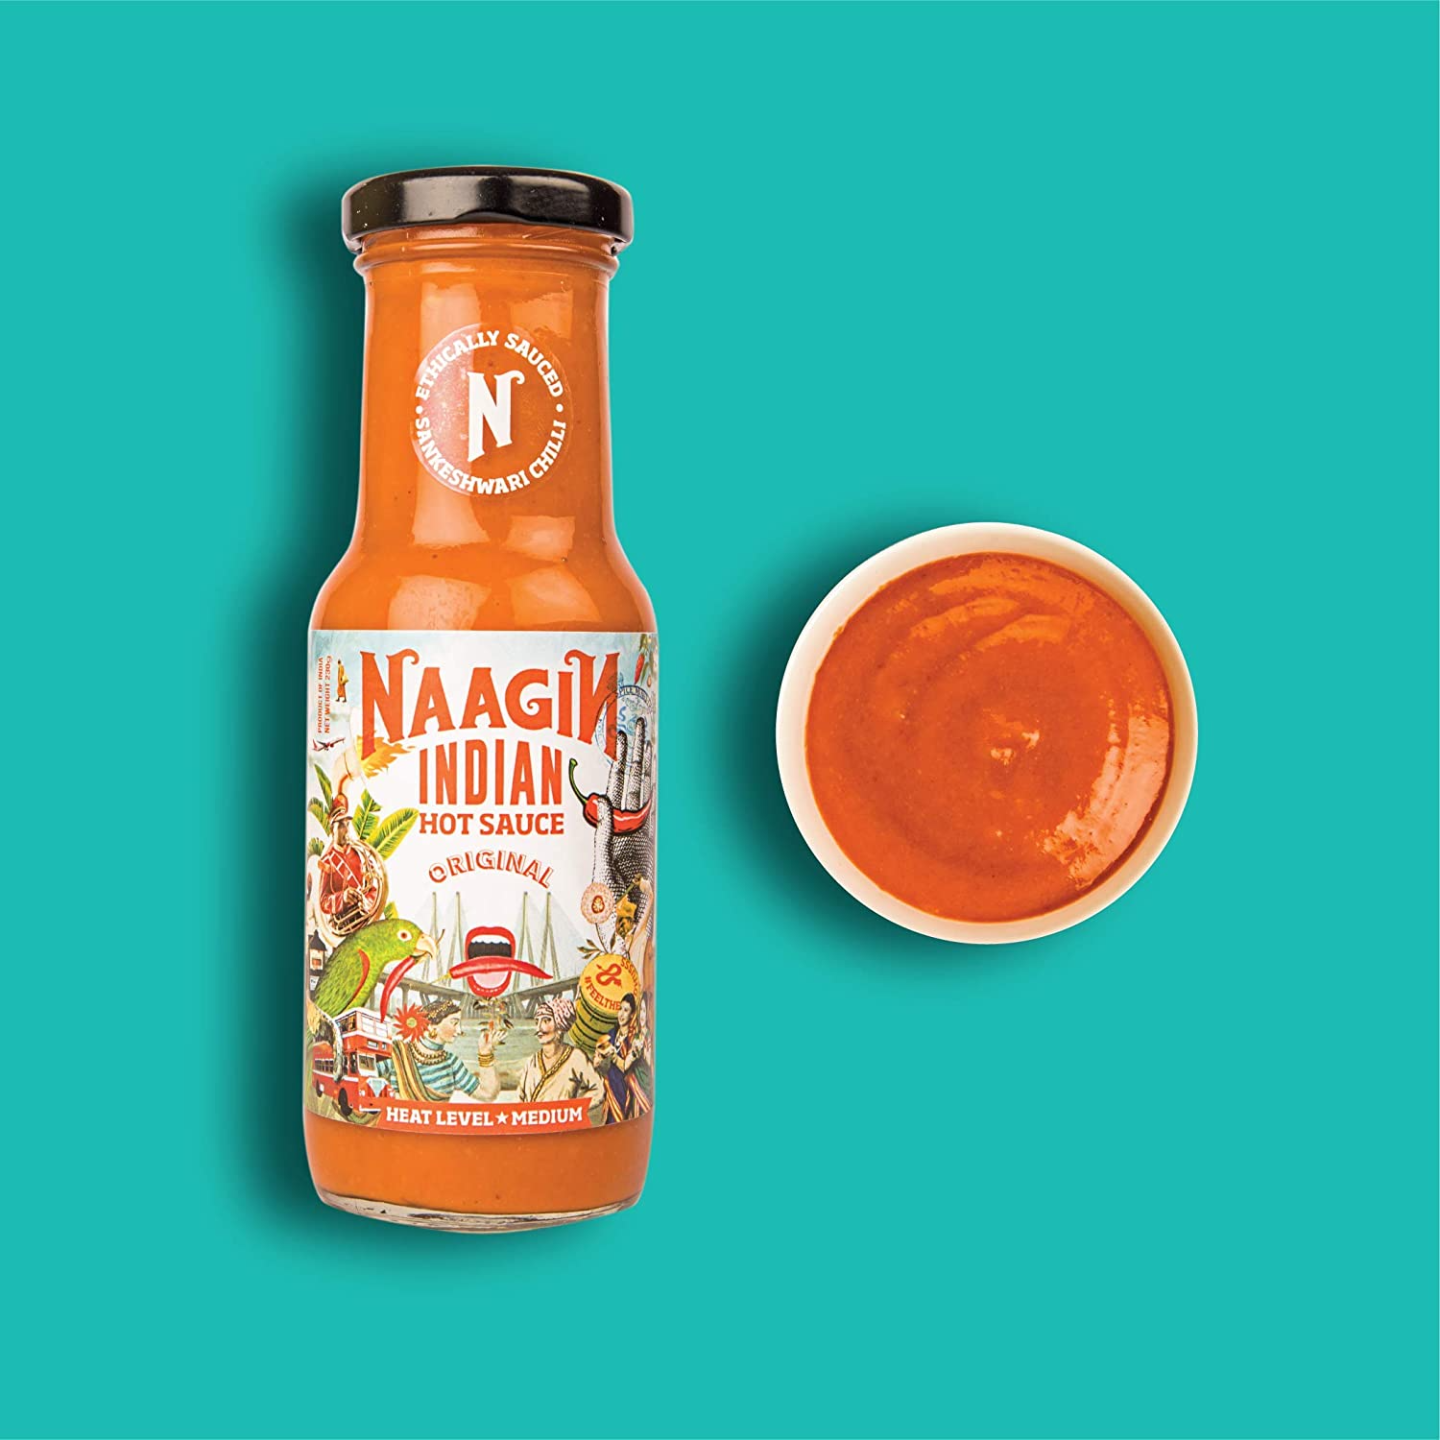 Naagin Original Indian Hot Sauce (230g)